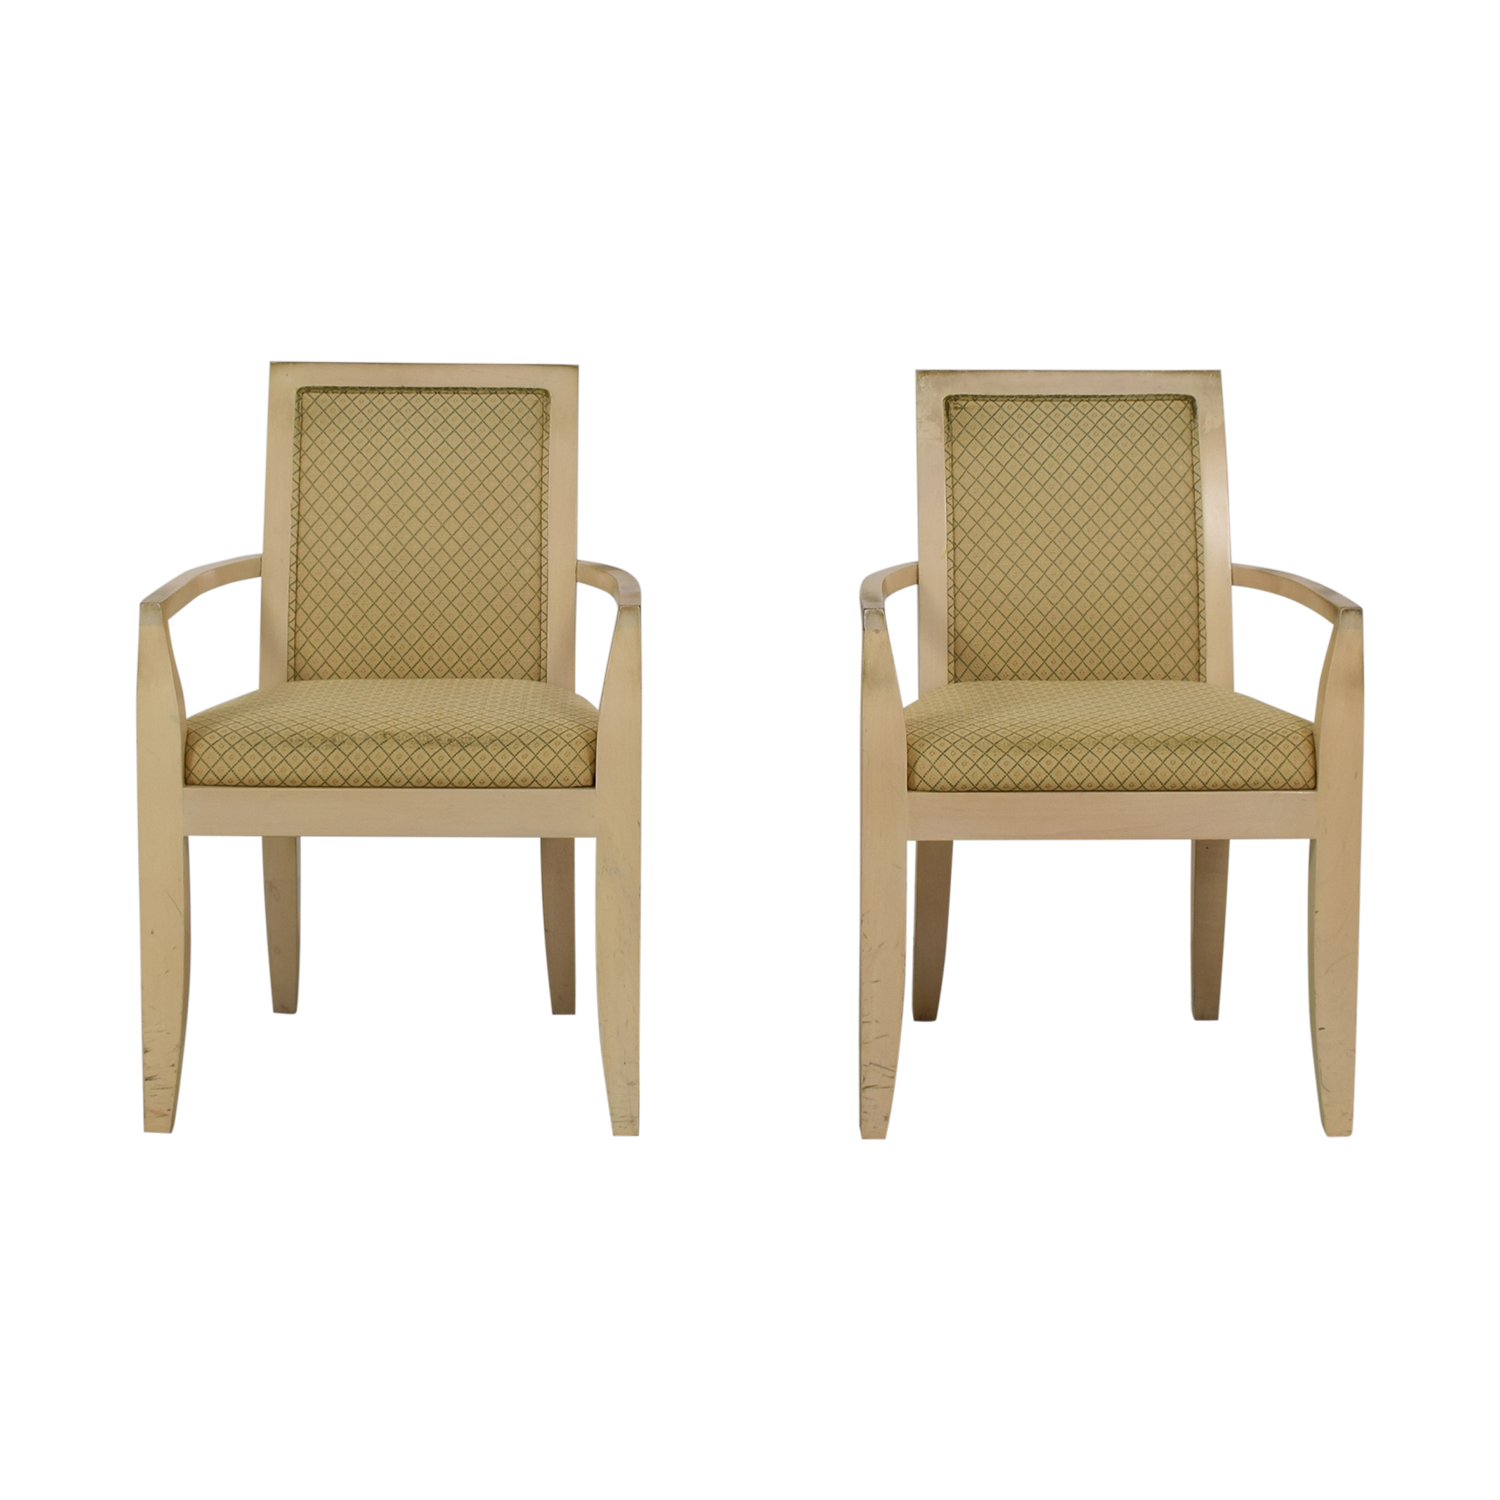 Todd Hase Todd Hase Beige Upholstered Accent Chairs nyc